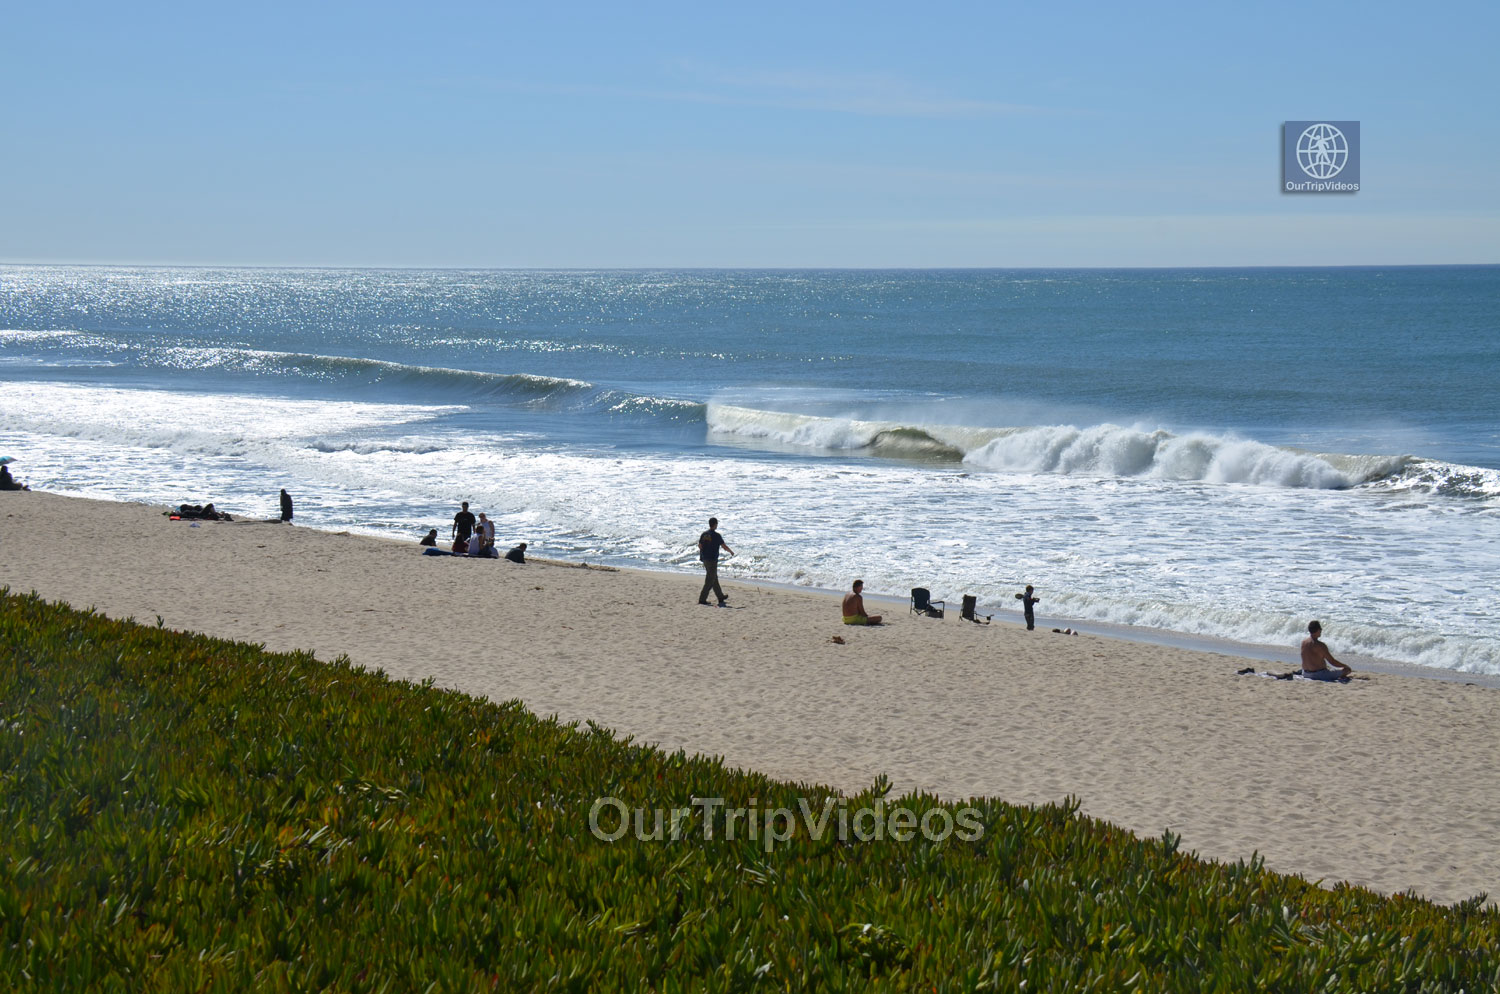 State Beach(Francis Beach), Half Moon Bay, CA, USA - Picture 9 of 25